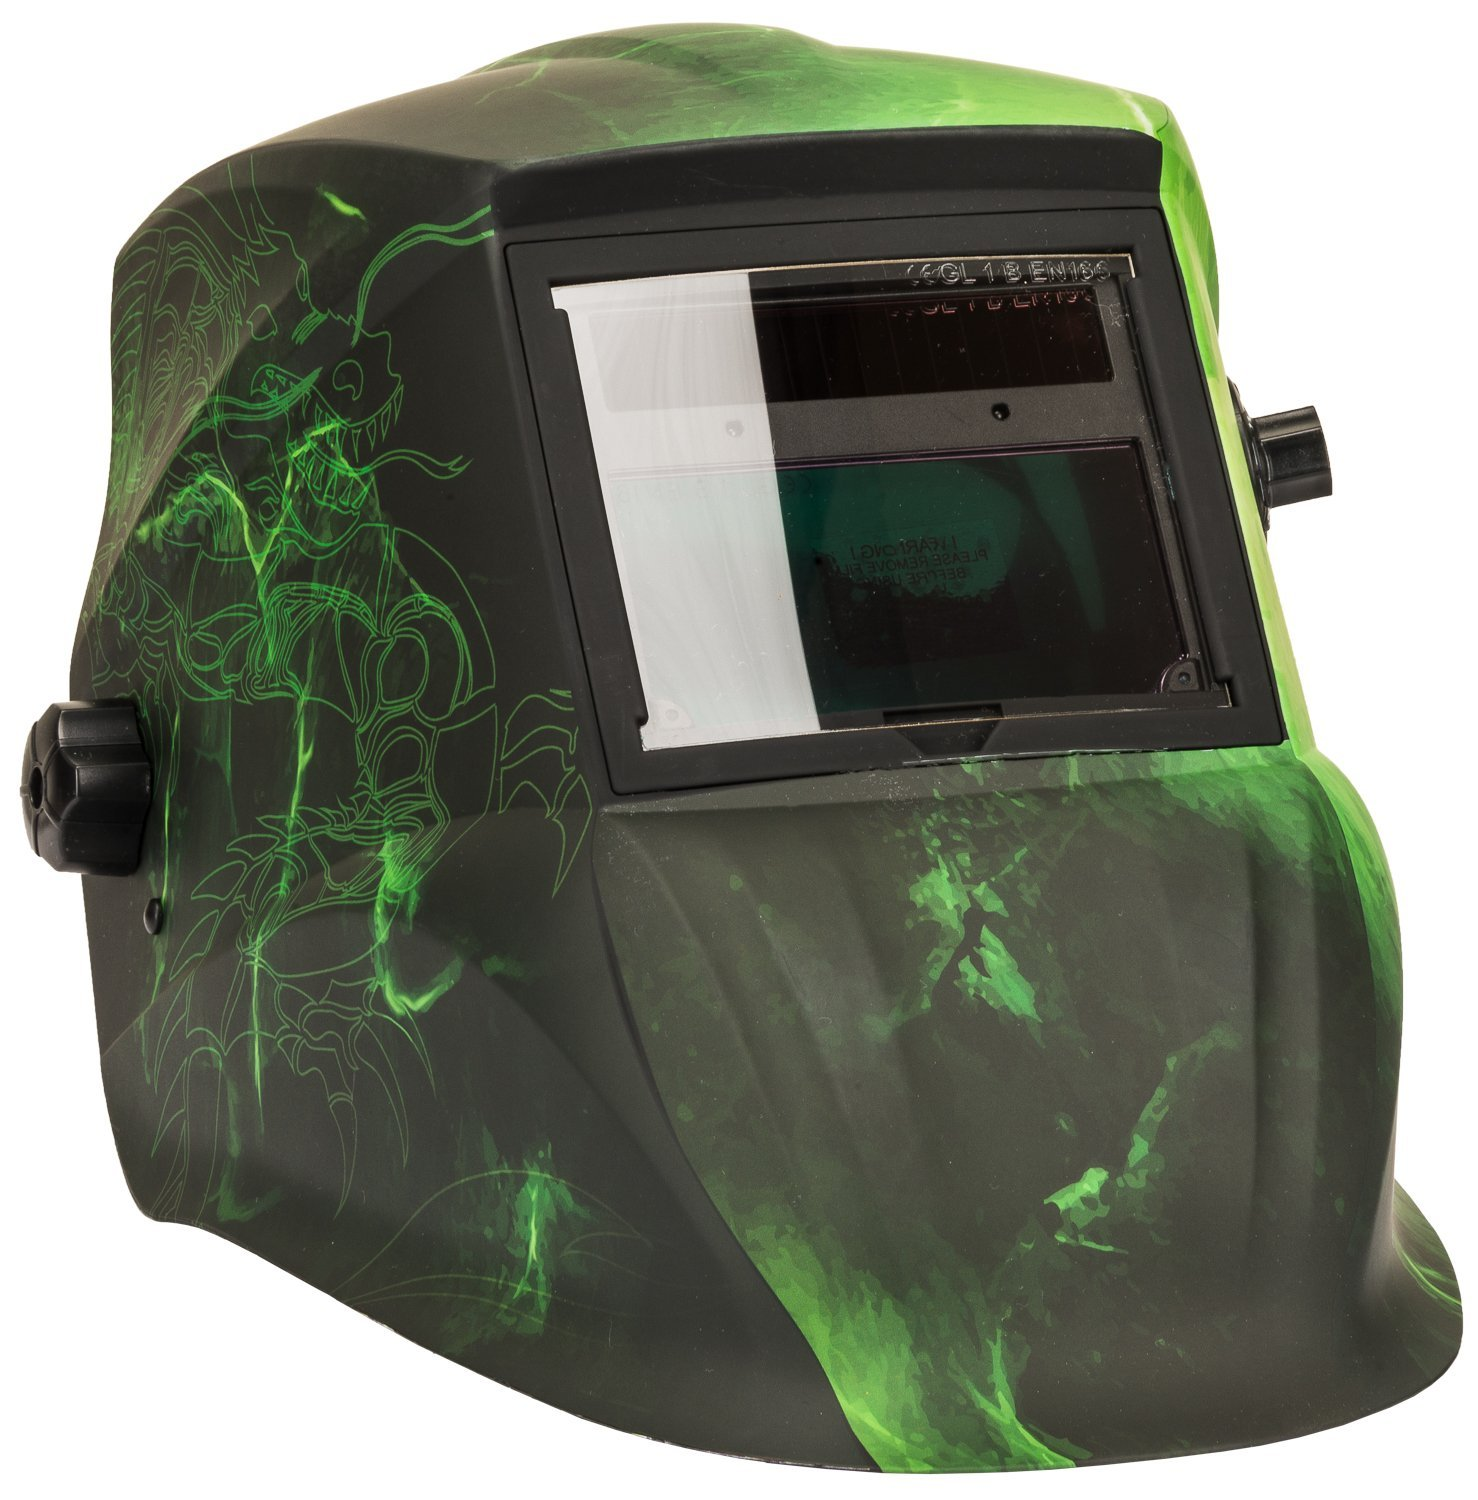 Forney 55707 Advantage Series Edge Auto Darkening Welding Helmet by Forney (Image #1)